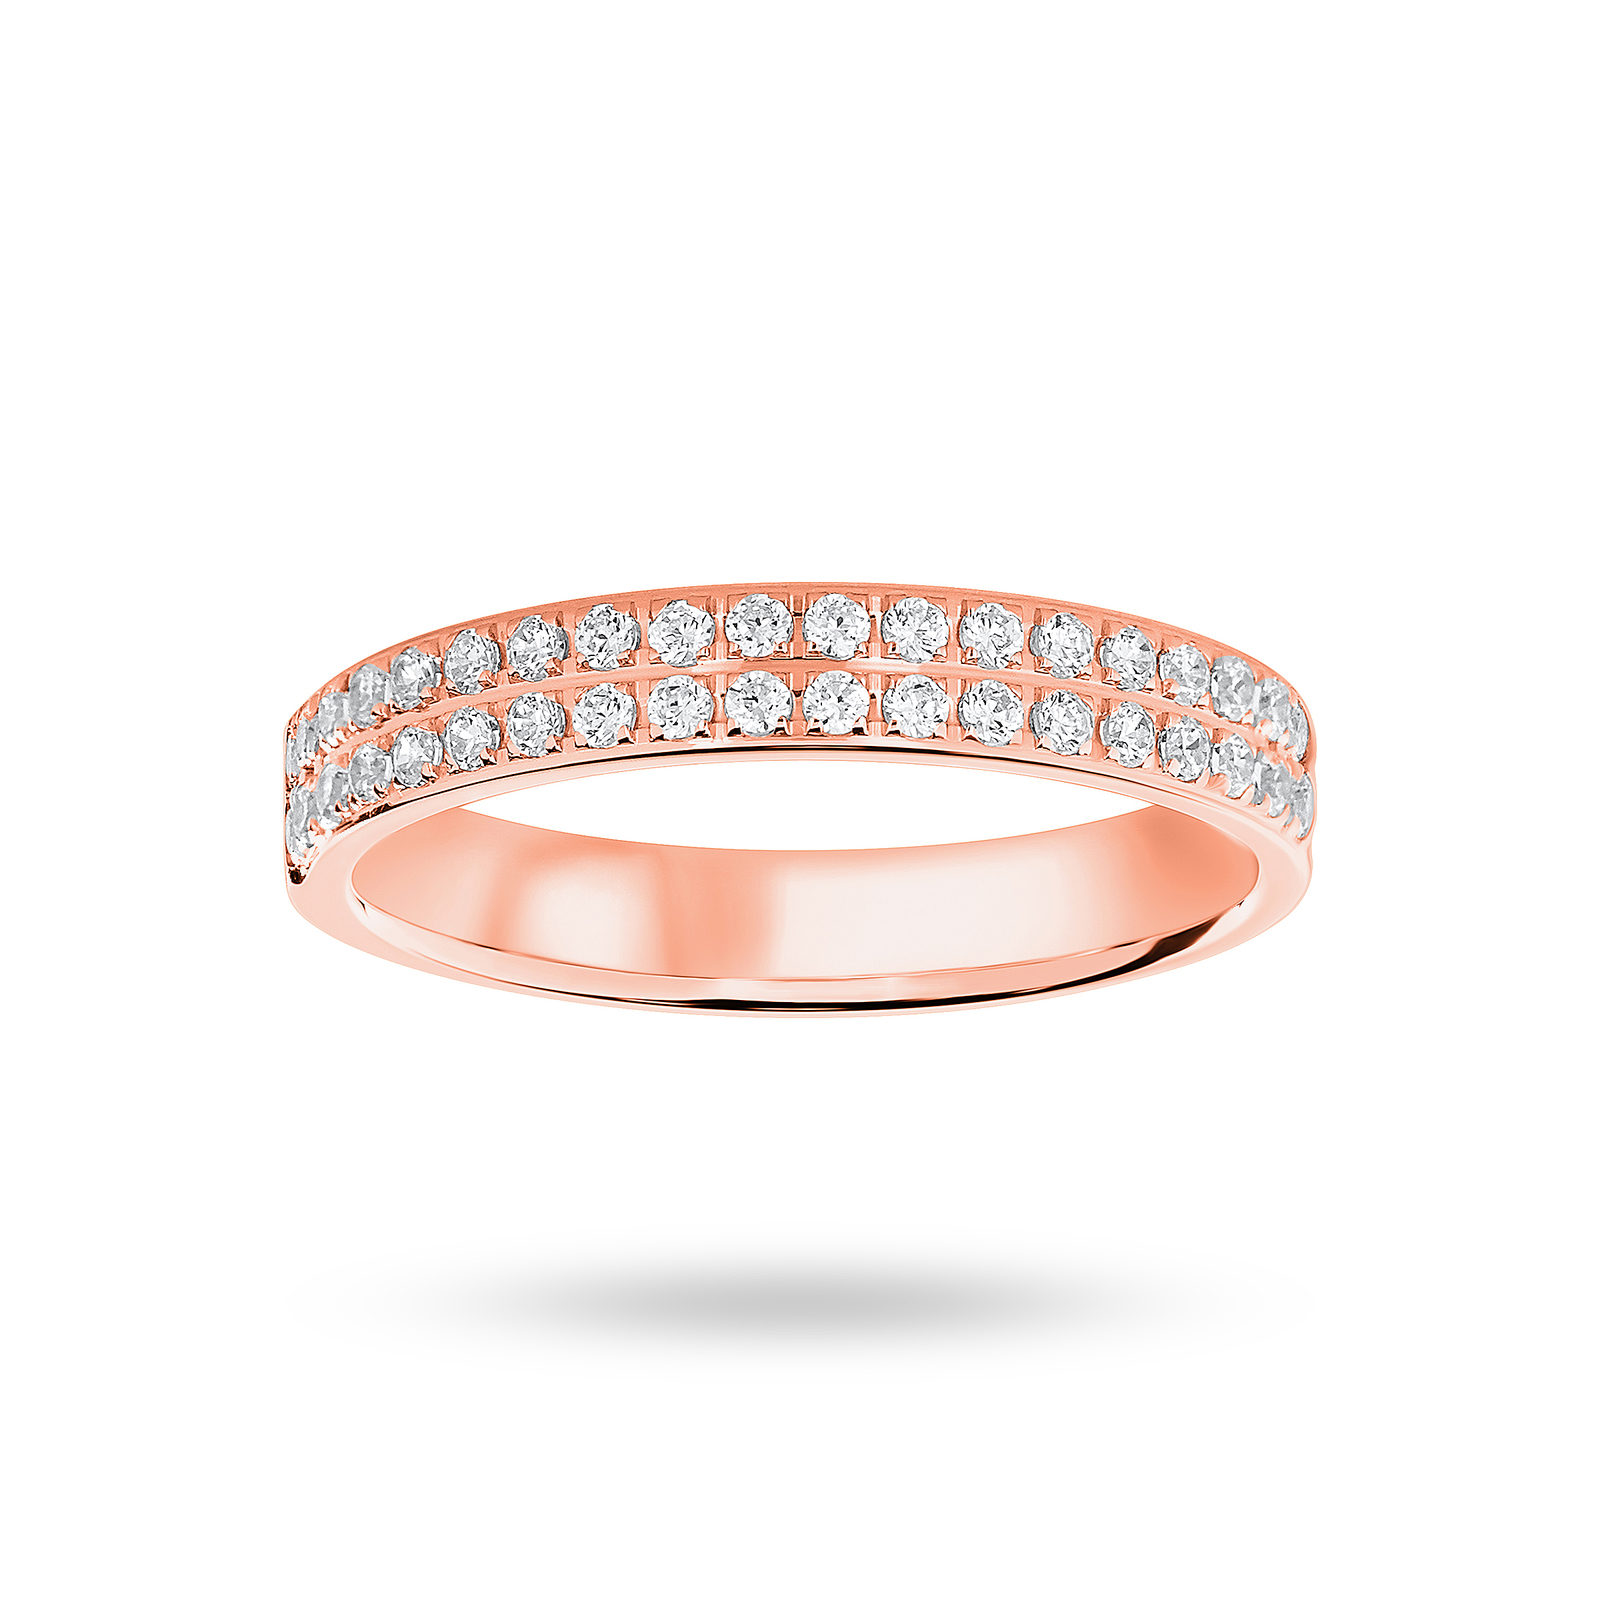 9 ct Rose Gold 0.25 cttw Round Brilliant Cut 2 Row Claw Pave Half Eternity Ring